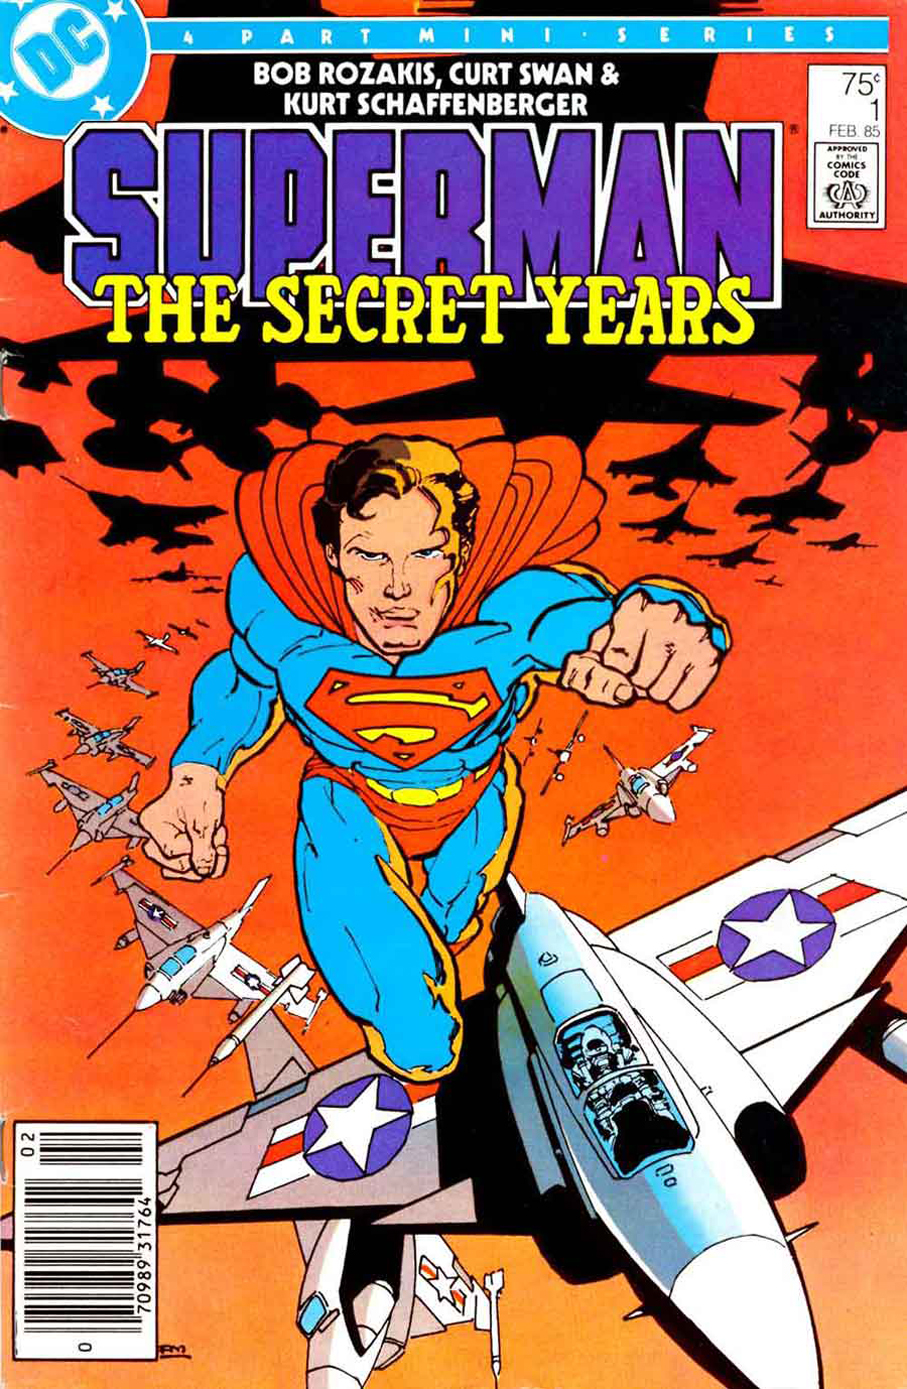 Superman Comic Book Cover Art : The dork review rob s room frank miller superman covers